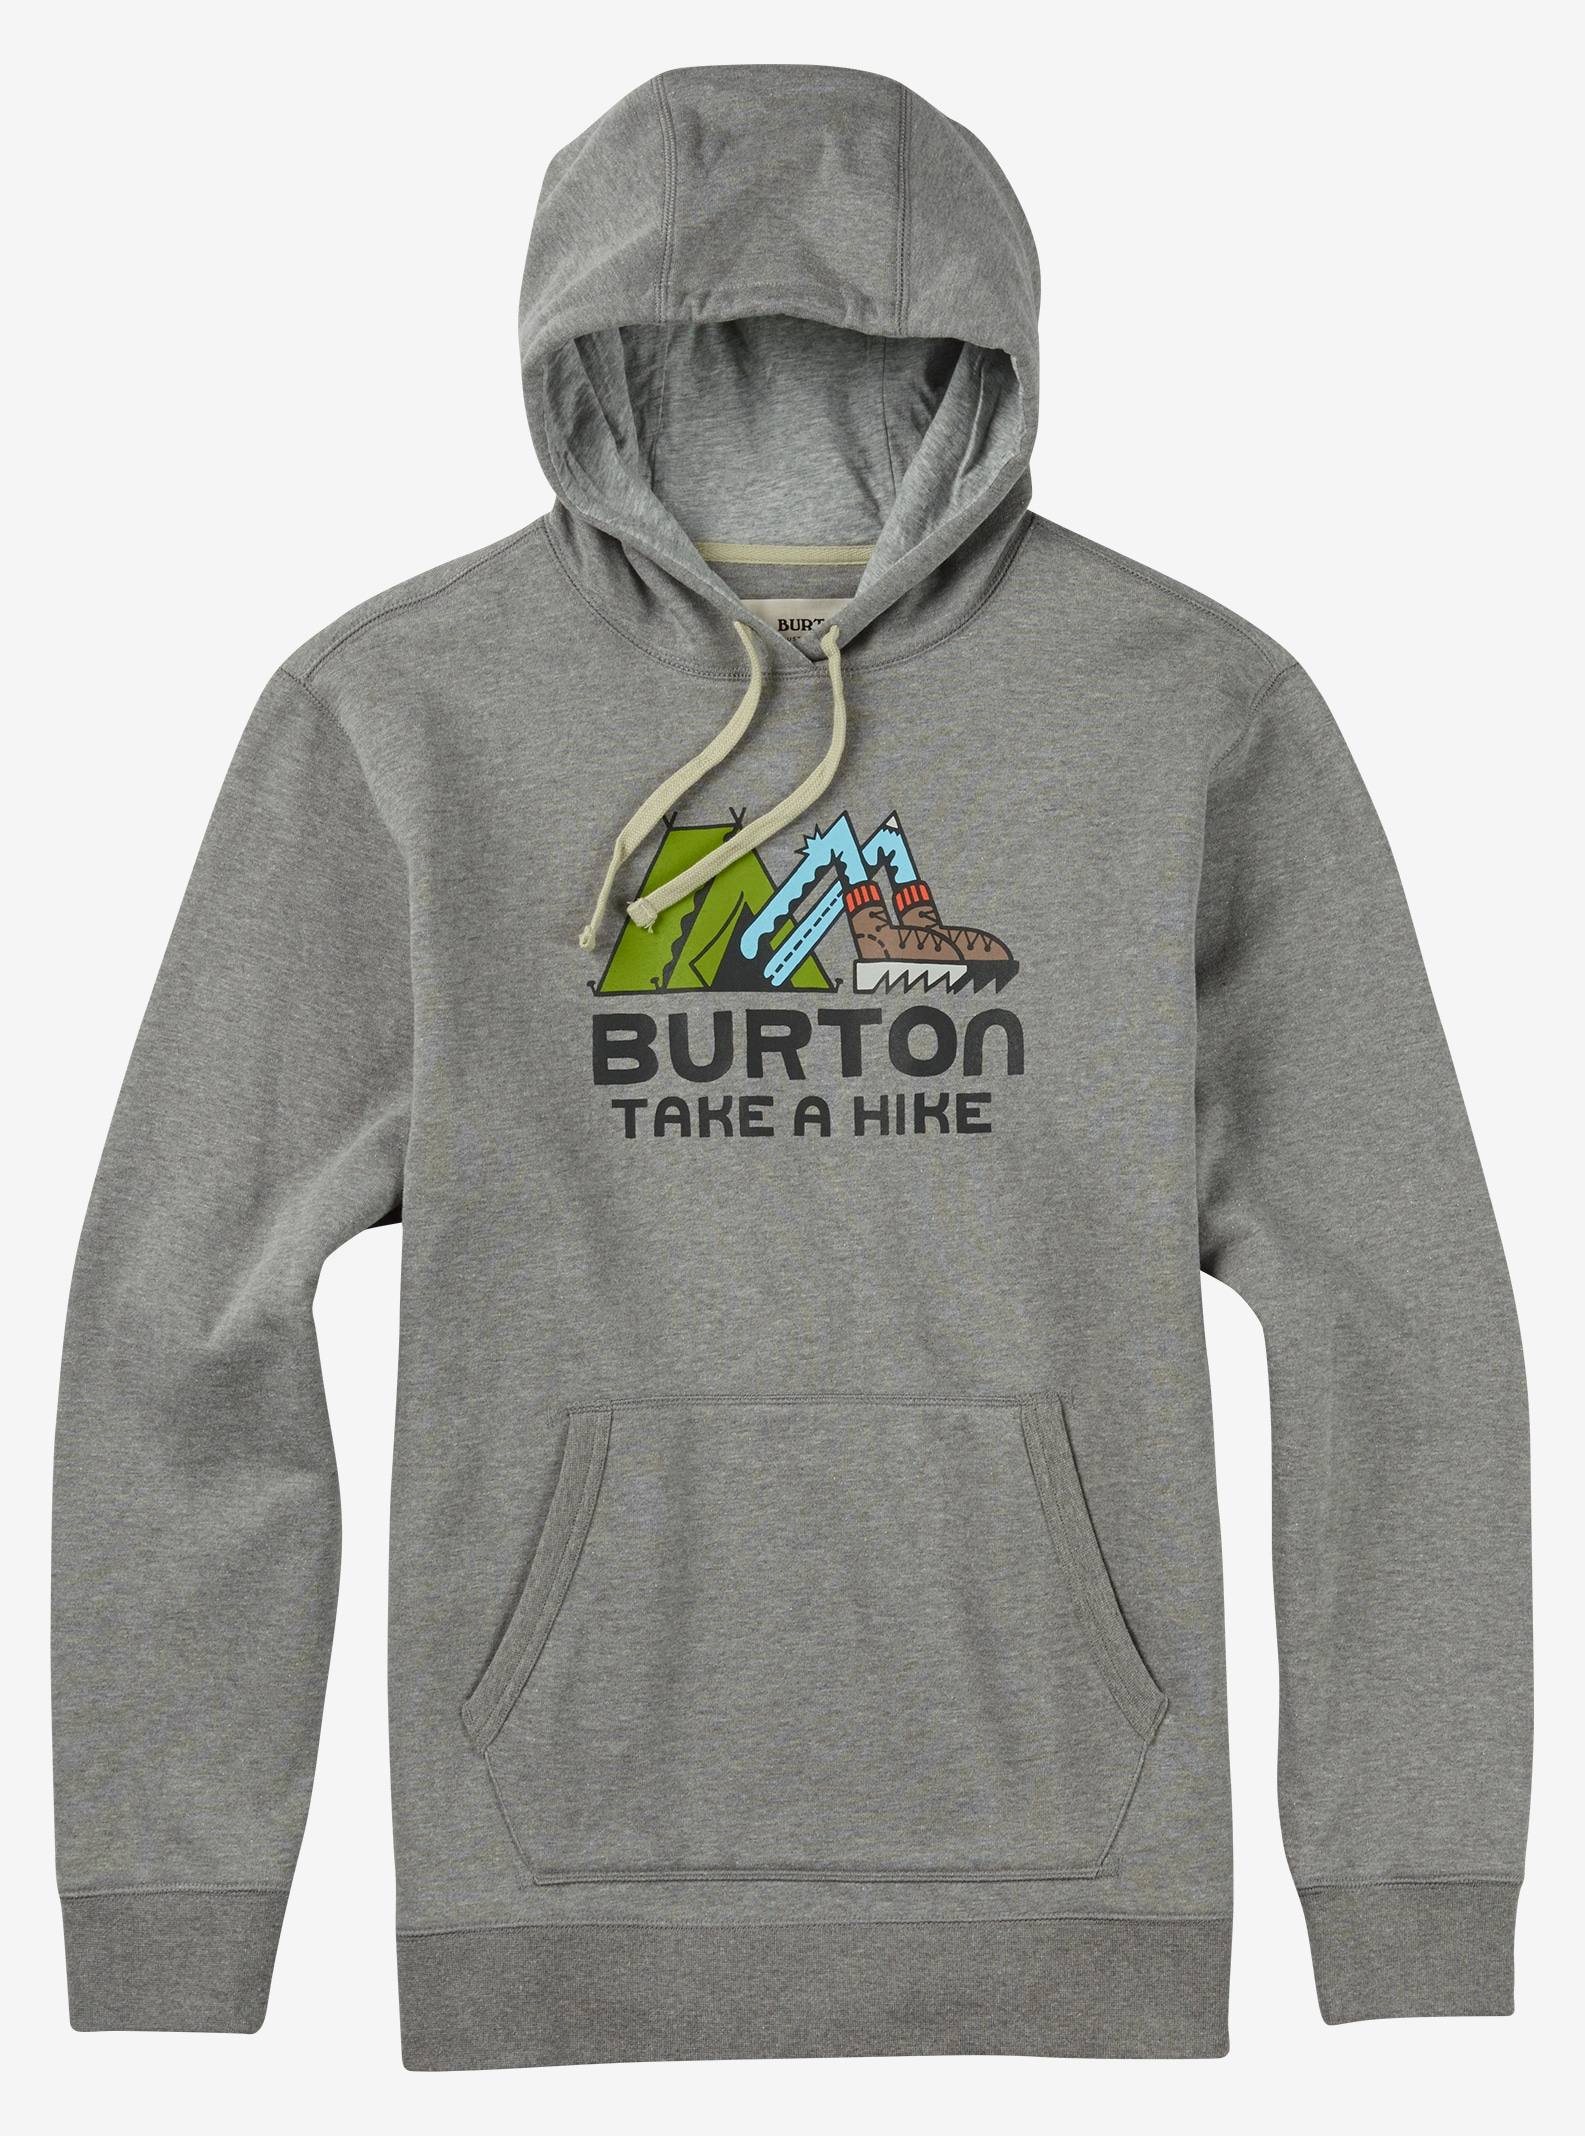 Burton Take A Hike Pullover Hoodie shown in Gray Heather